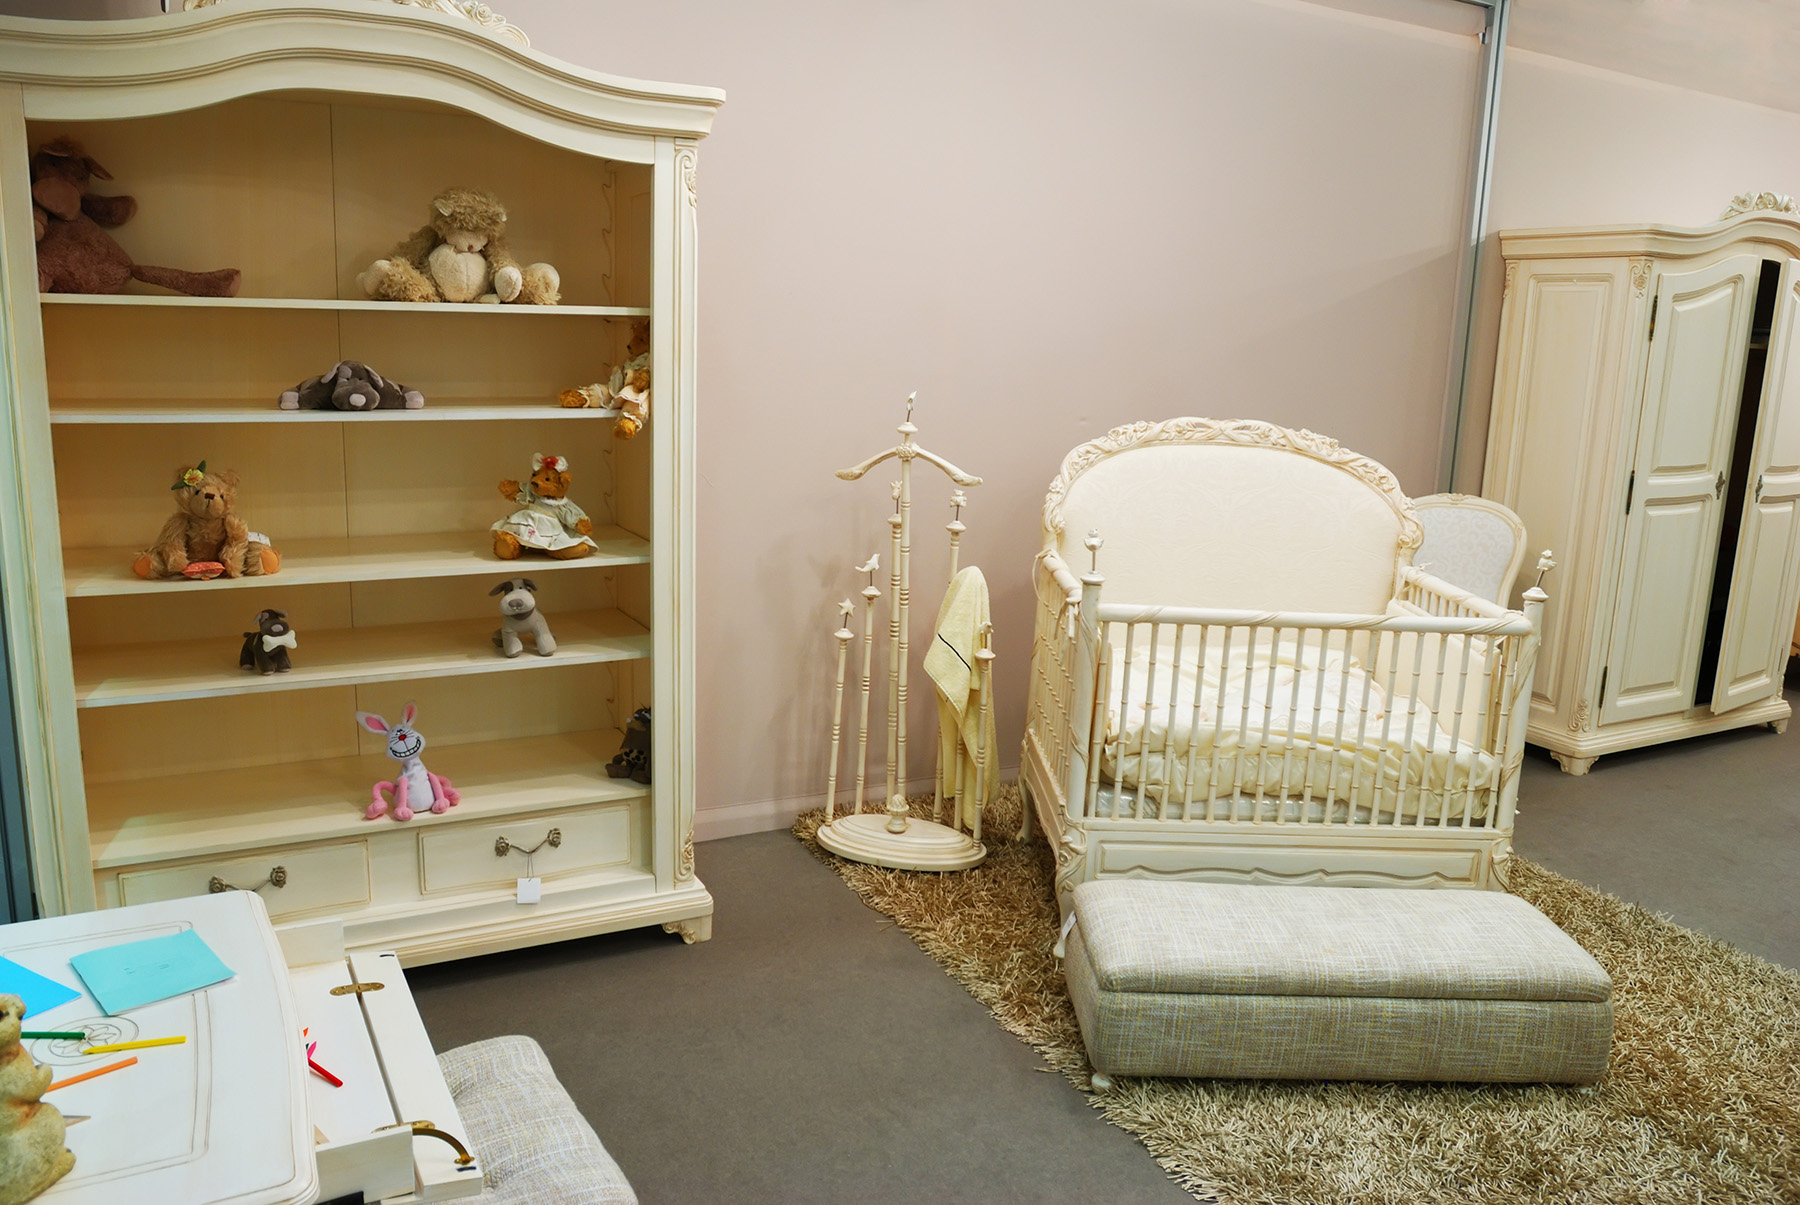 Toy display racks and baby bed 51589